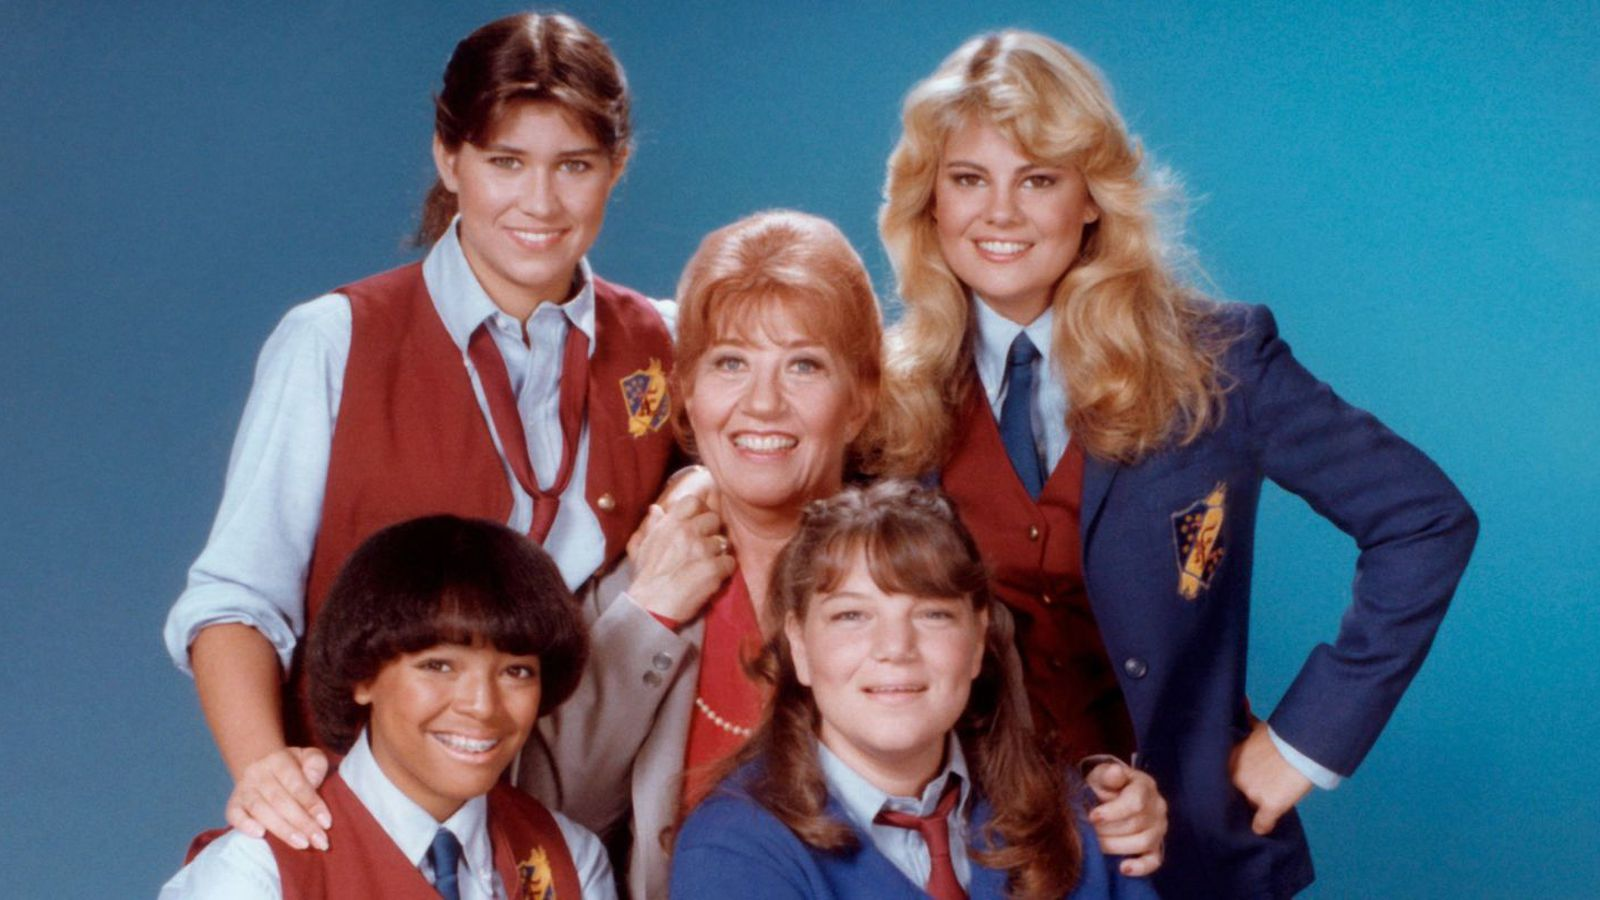 the facts of life tv wallpaper 72726